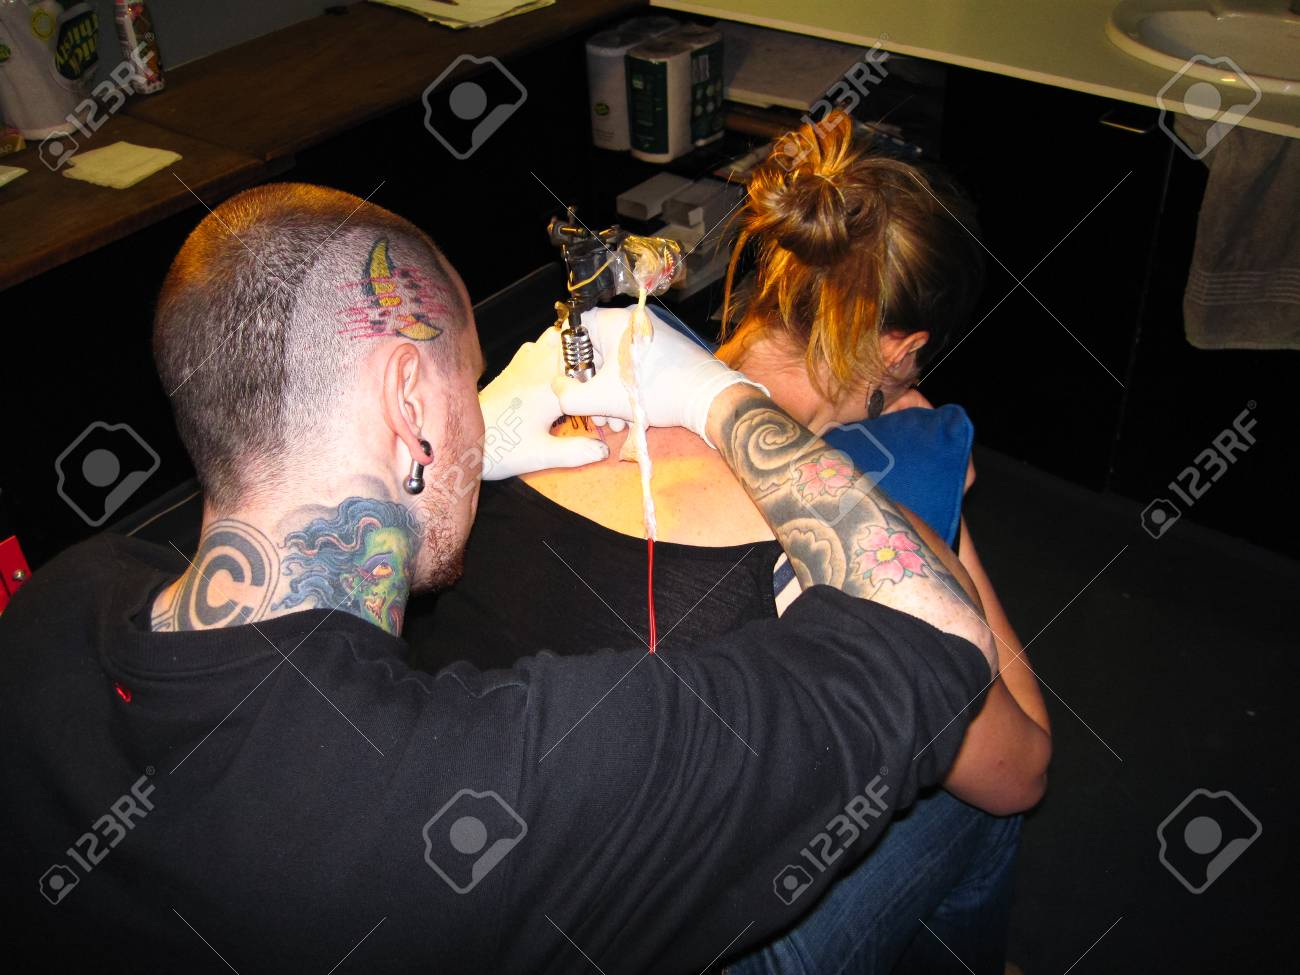 b4128f013 A tattoo artist carefully inks a client in a professional tattoo parlor.  Stock Photo -